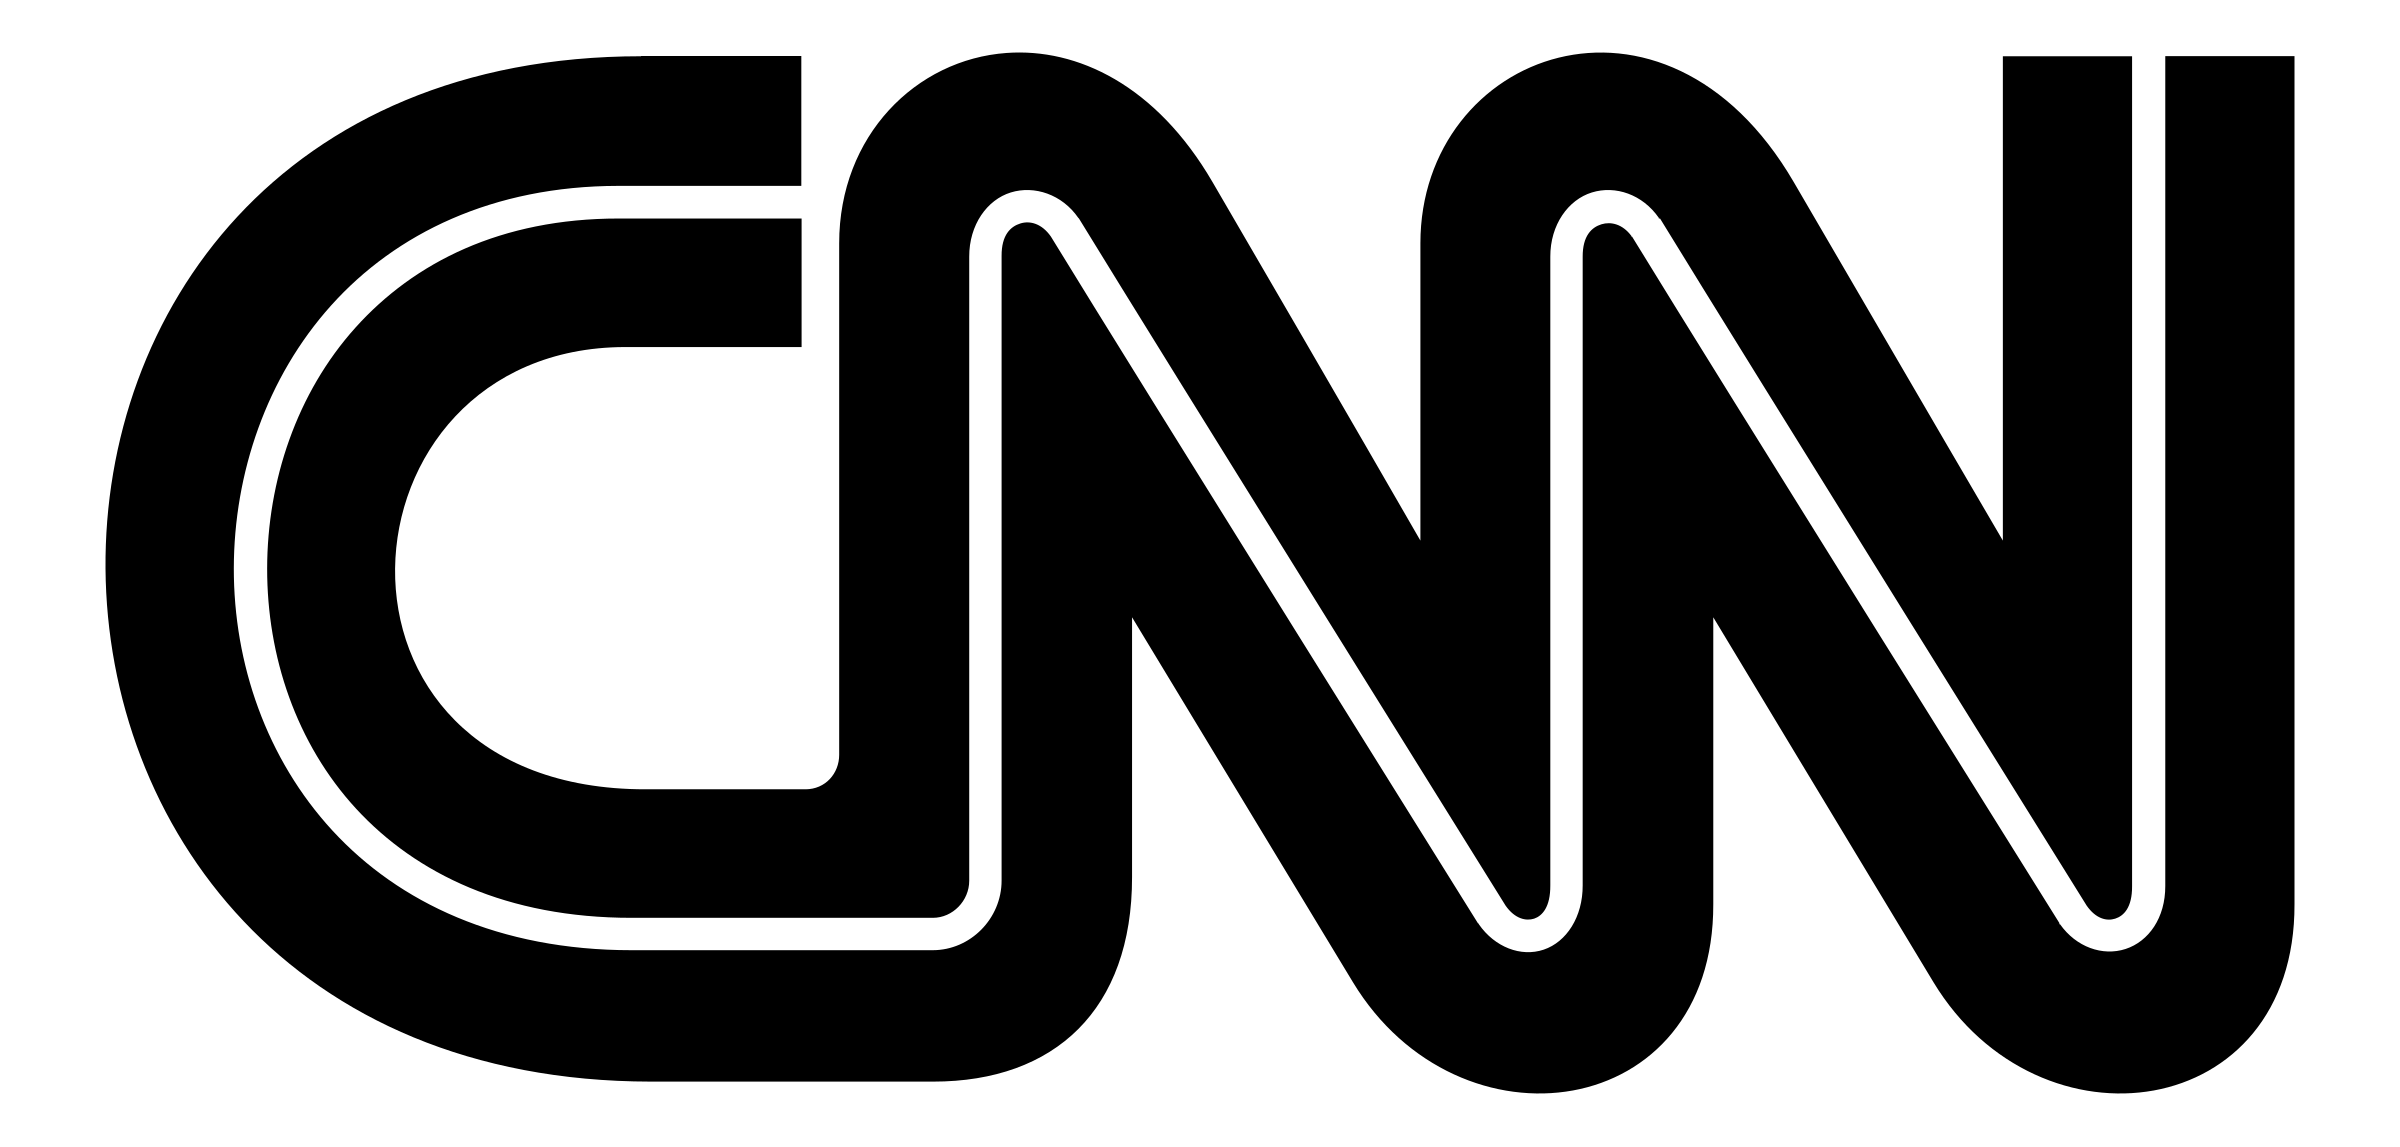 cnn-logo-black-transparent